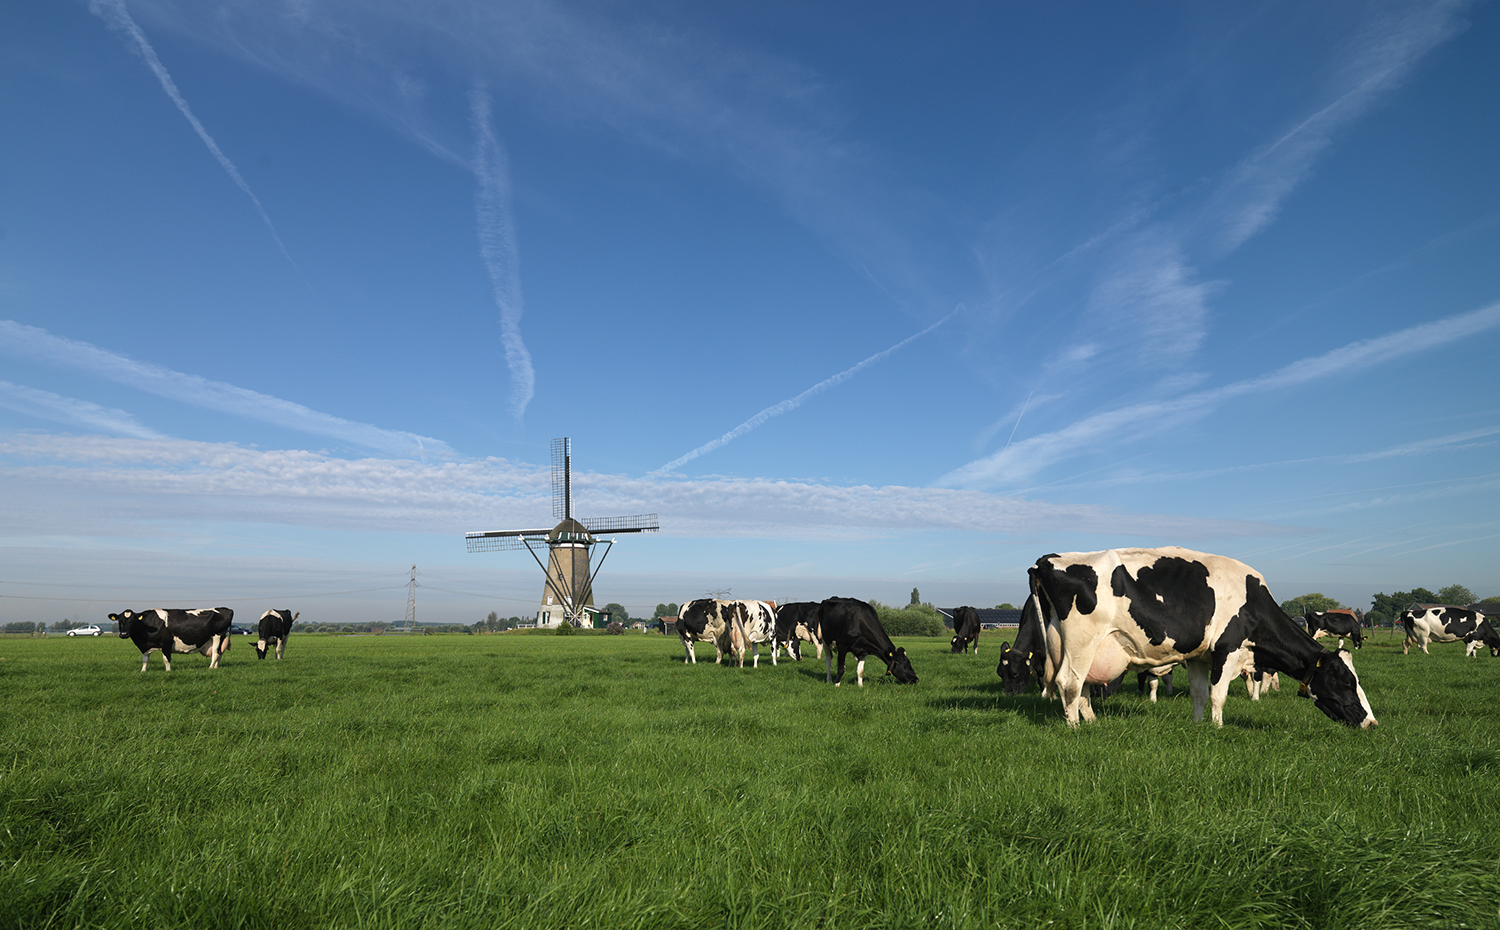 A field full of cows with a Dutch windmill in the background